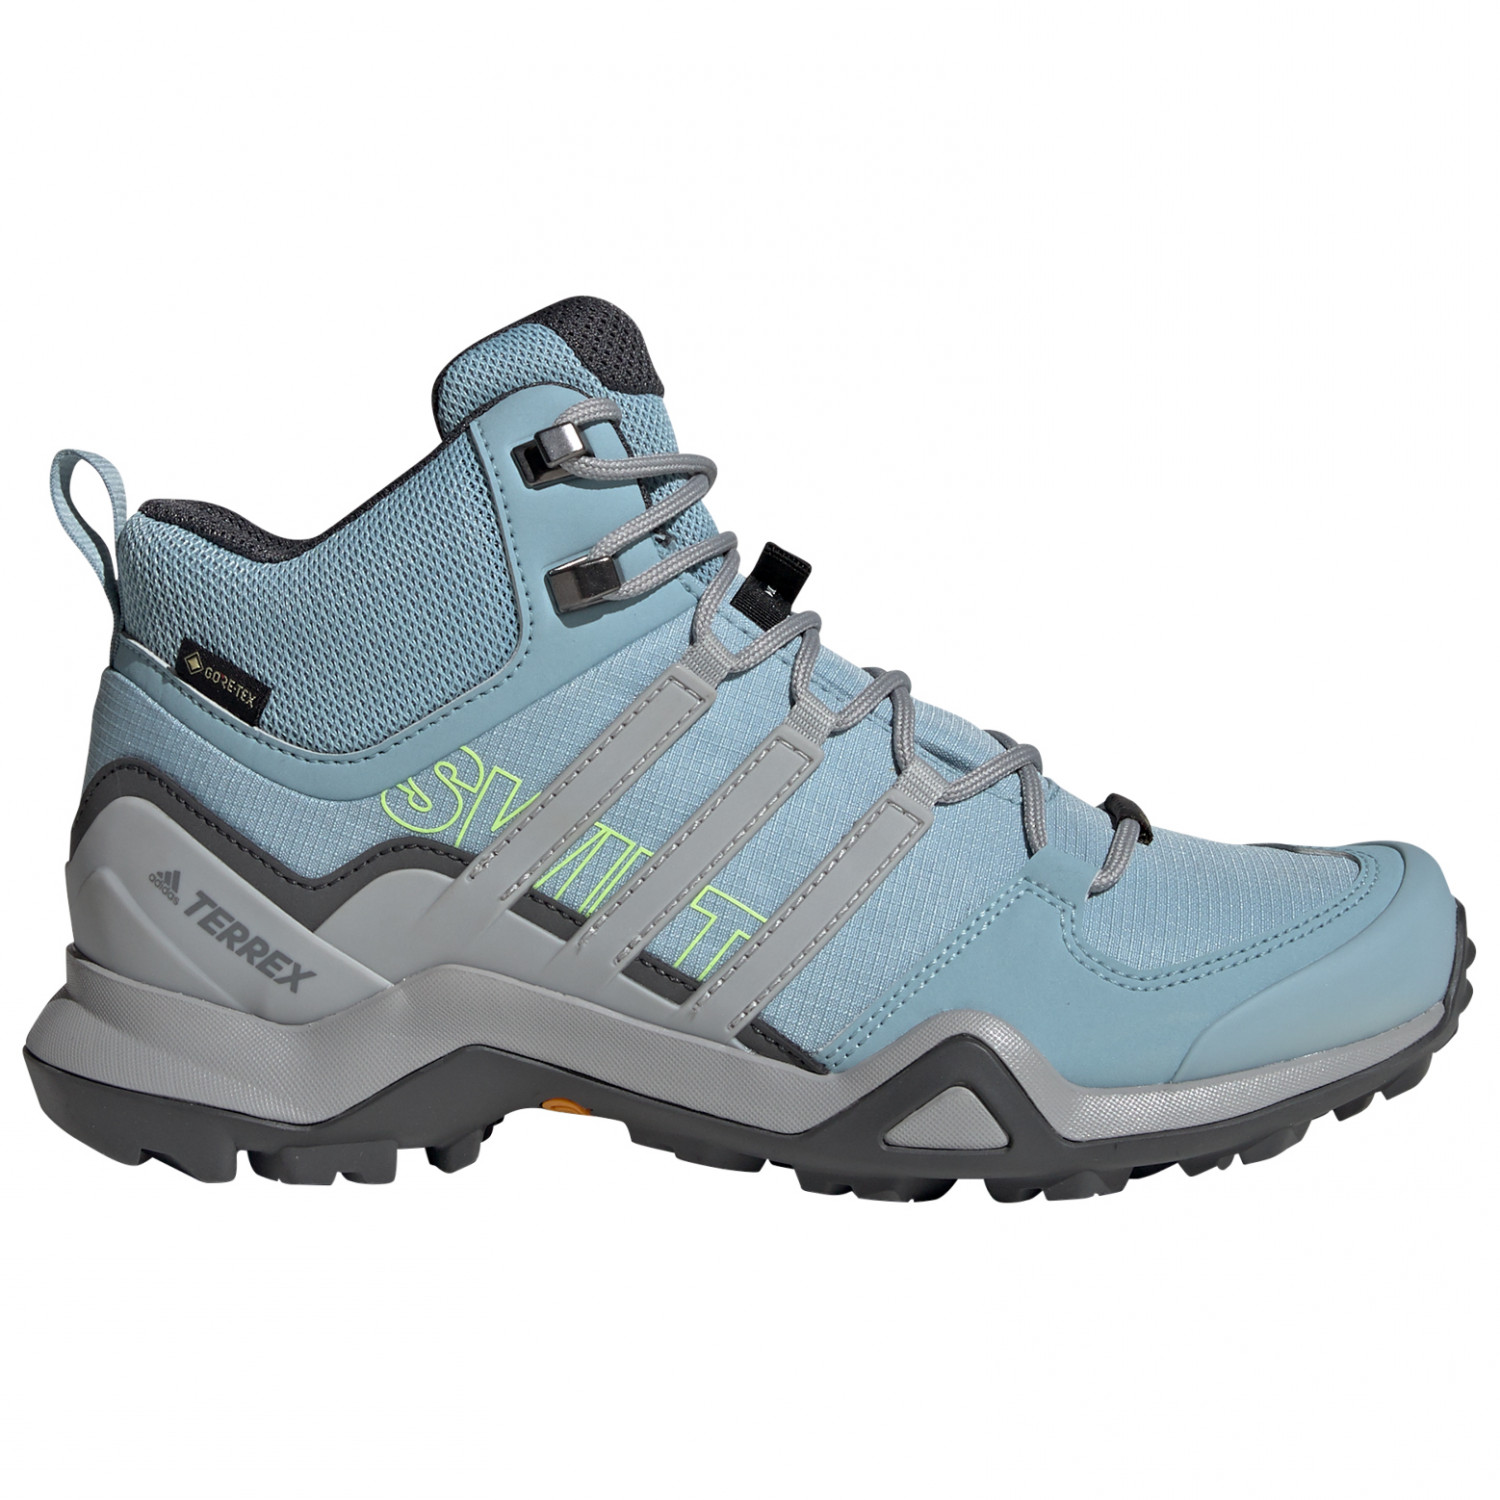 adidas - Women's Terrex Swift R2 Mid GTX - Walking boots - Legend Earth /  Legacy Green / Ash Grey S18 | 4,5 (UK)